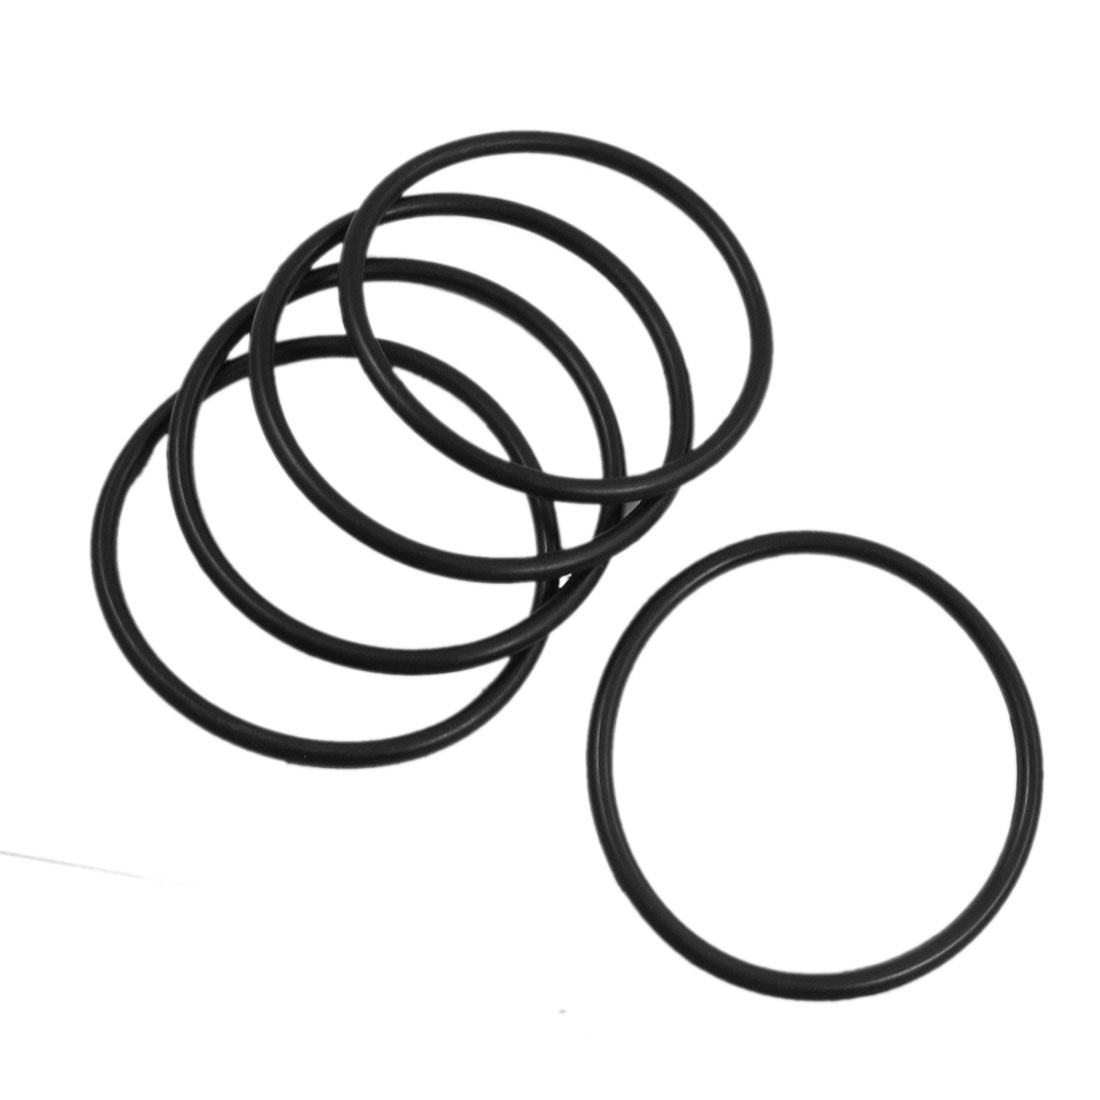 5 Pcs 70mm x 4mm Rubber Sealing Oil Filter O Rings Gaskets Black